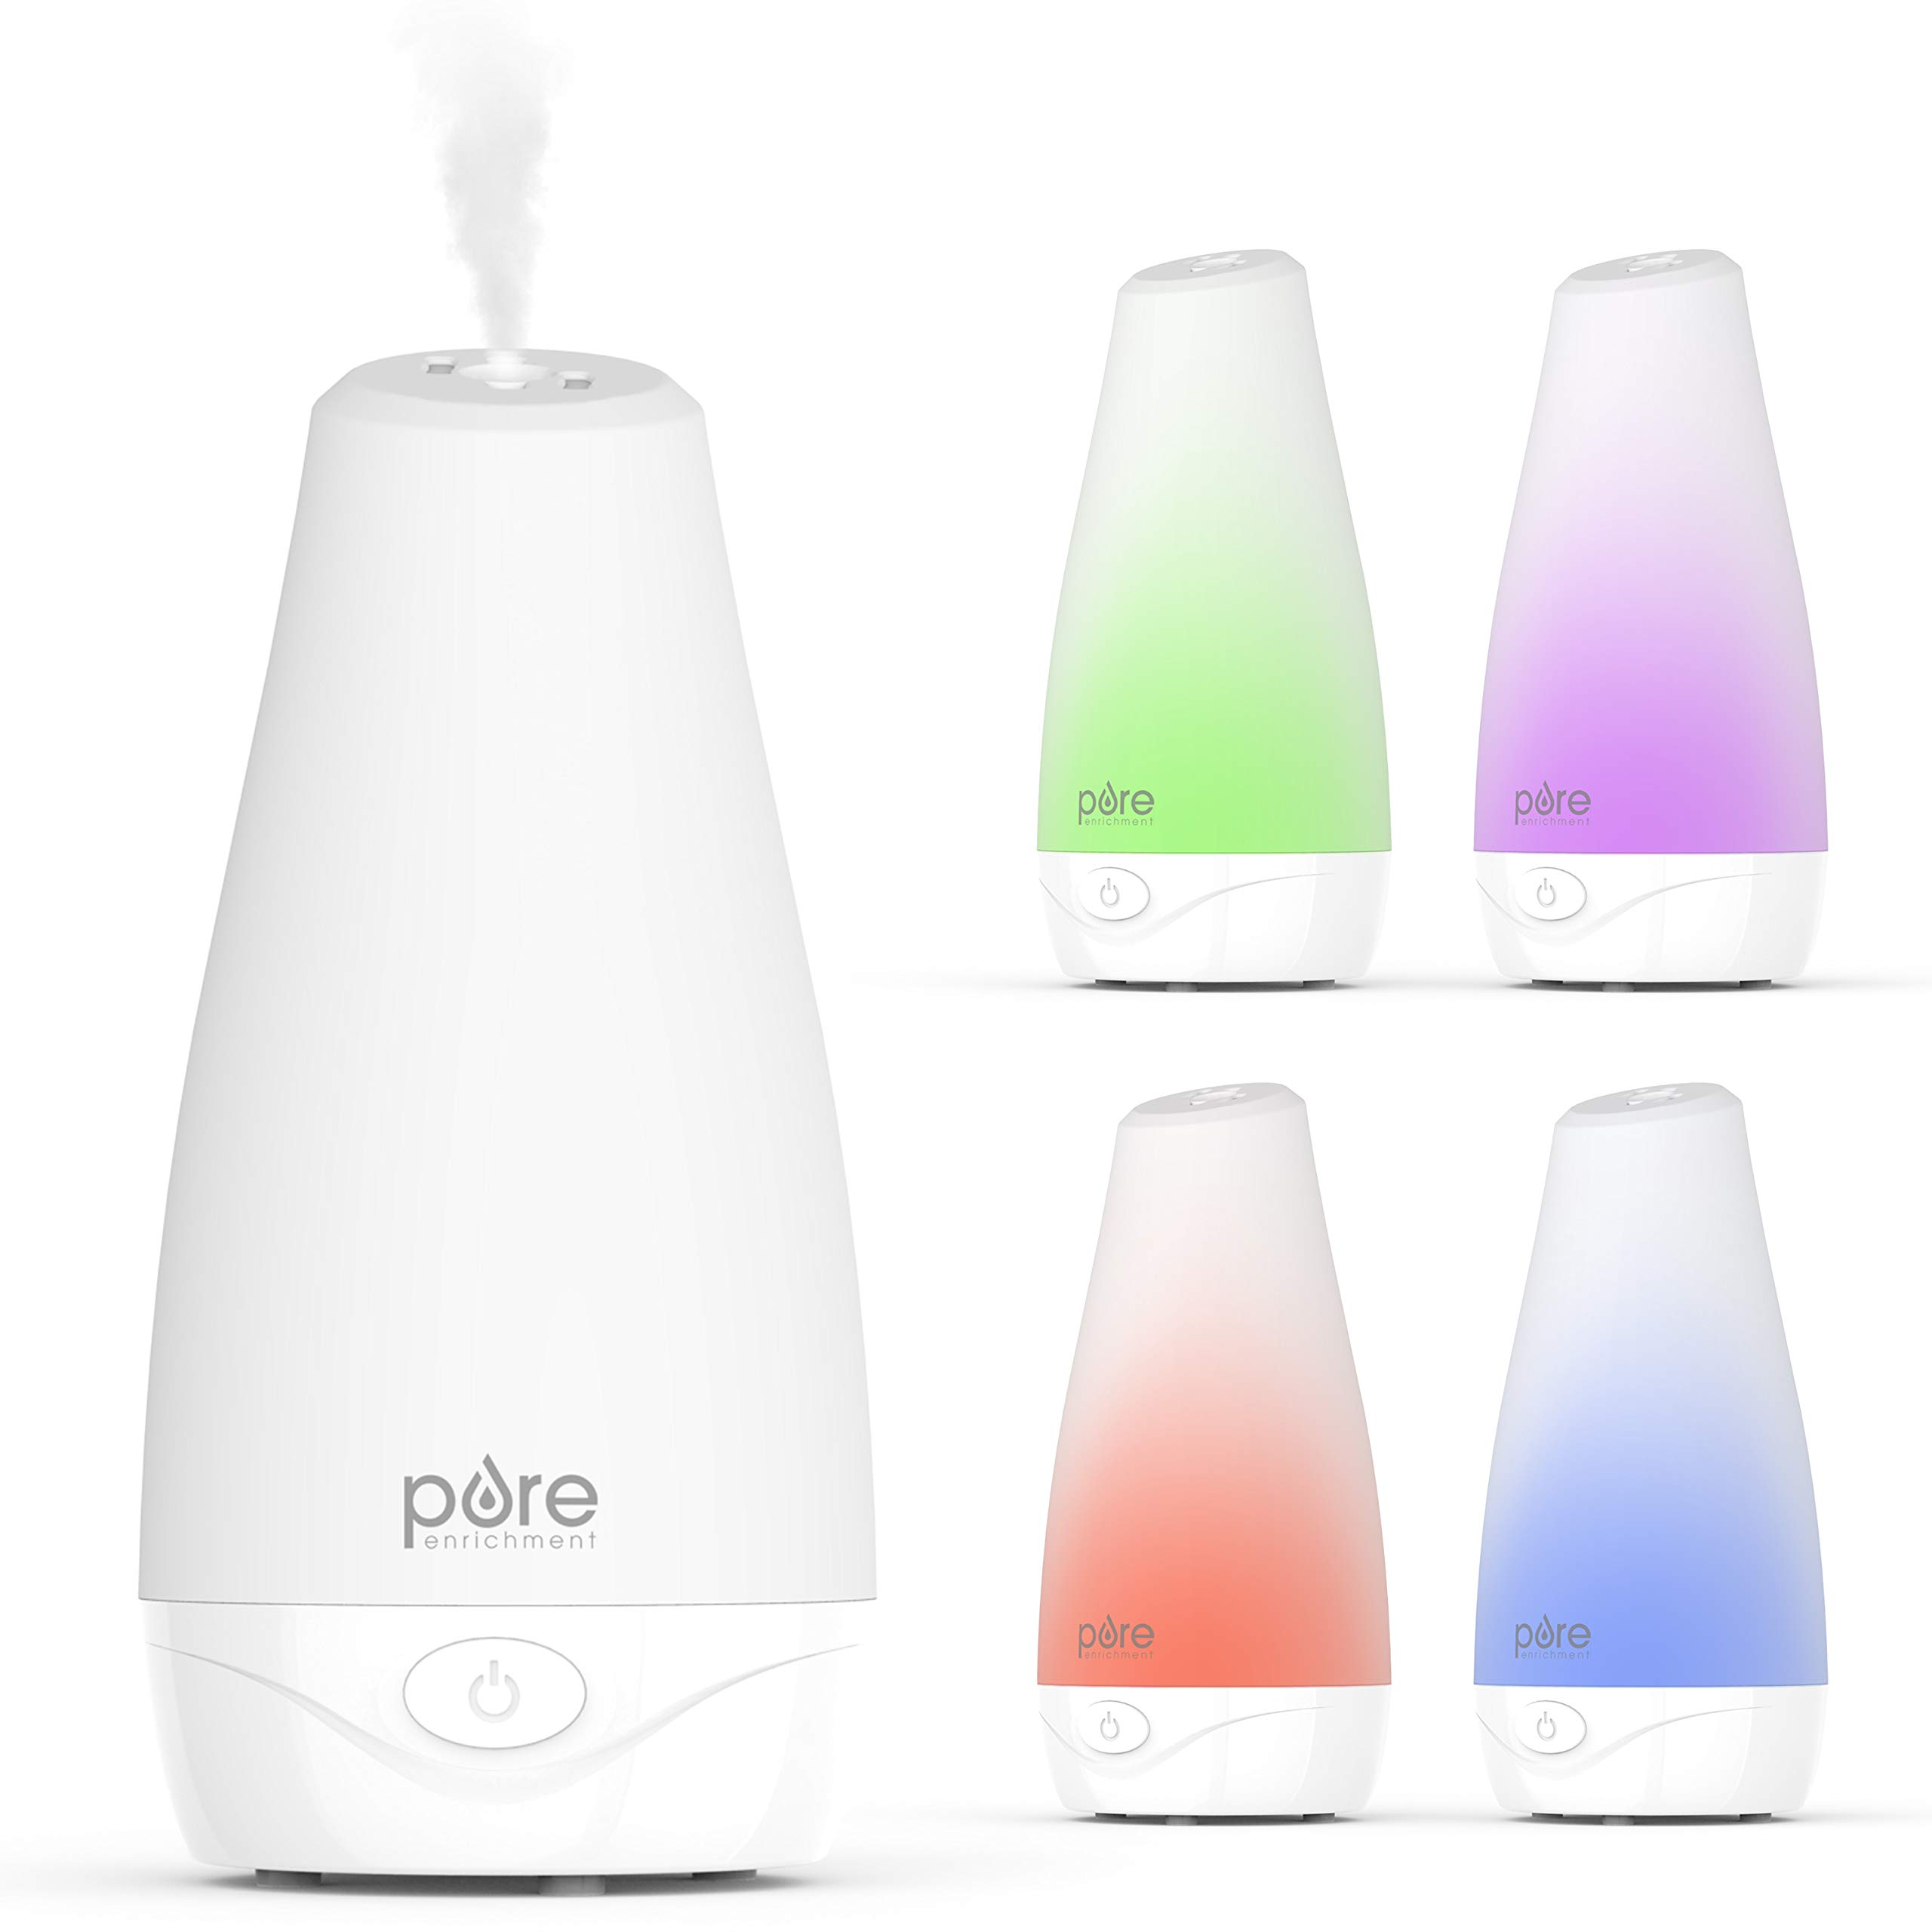 Pure Enrichment PureSpa Essential Oil Diffuser - Compact Air Deodorizer with 100ml Water Tank, Mood-Boosting Ionizer & Optional Color-Changing Light - Lastsup to 7 Hours with Auto Safety Shut-Off by Pure Enrichment